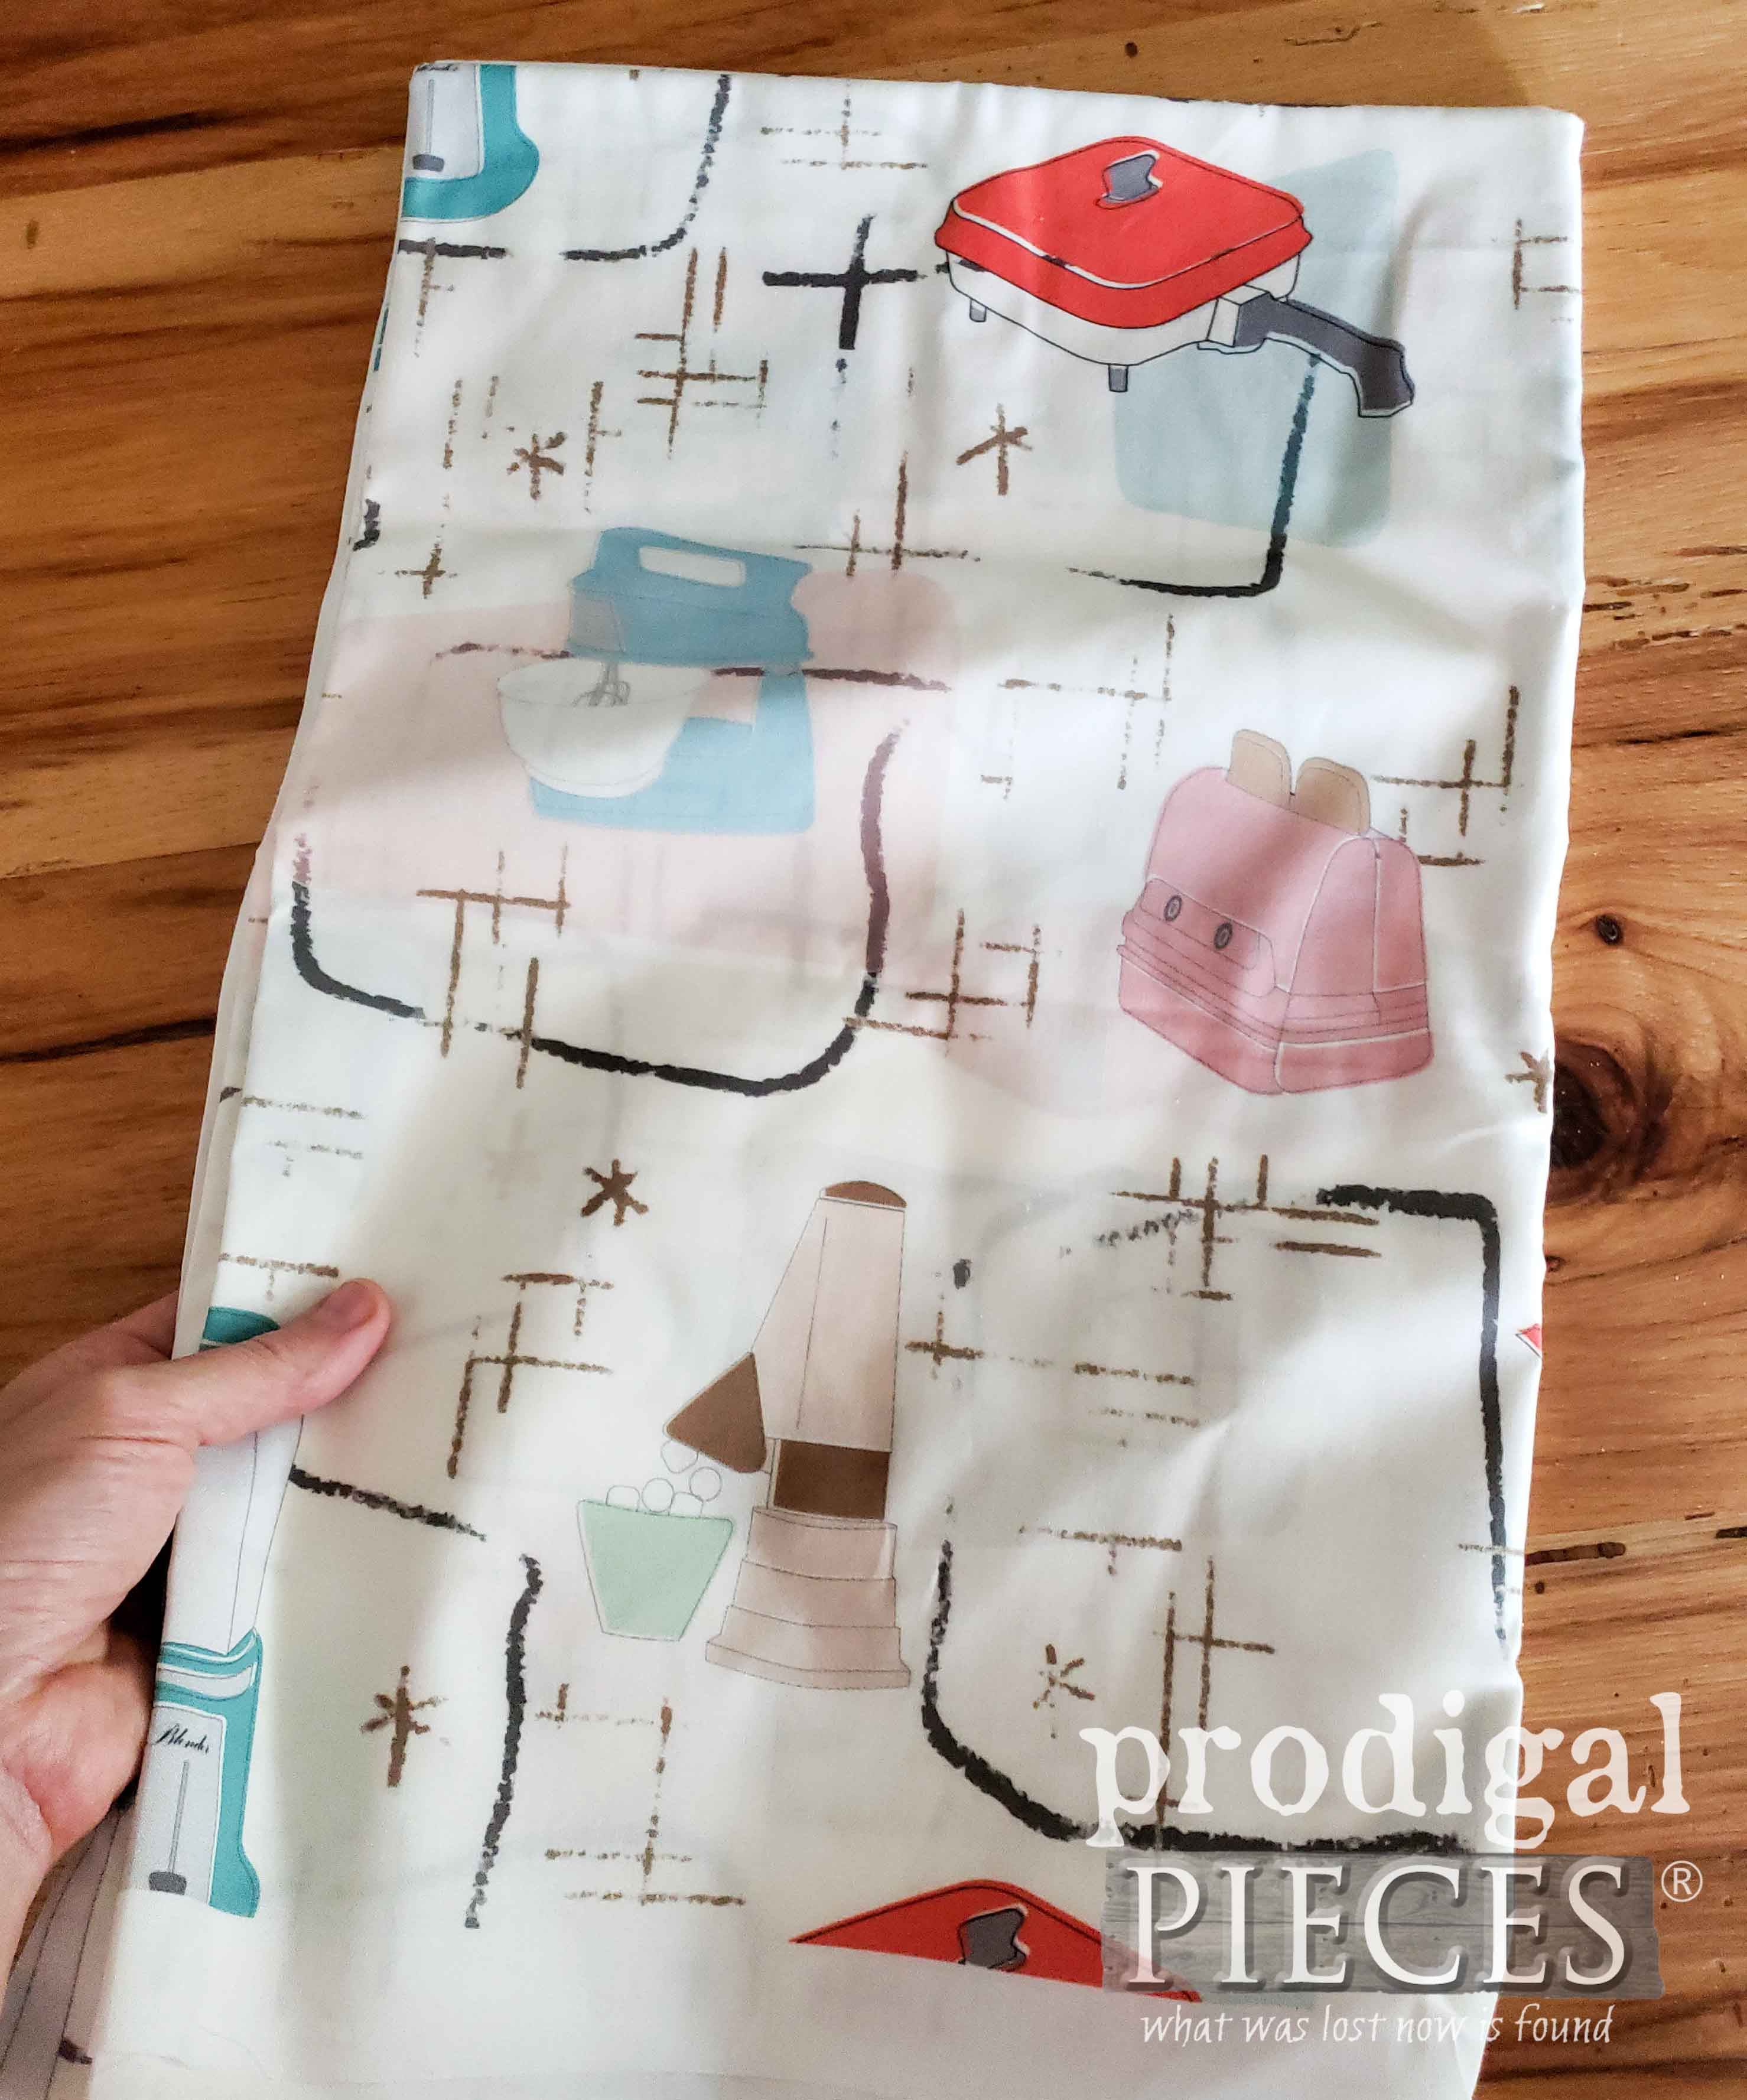 Retro Kitchen Fabric from Spoonflower used by Larissa of Prodigal Pieces | prodigalpieces.com #prodigalpieces